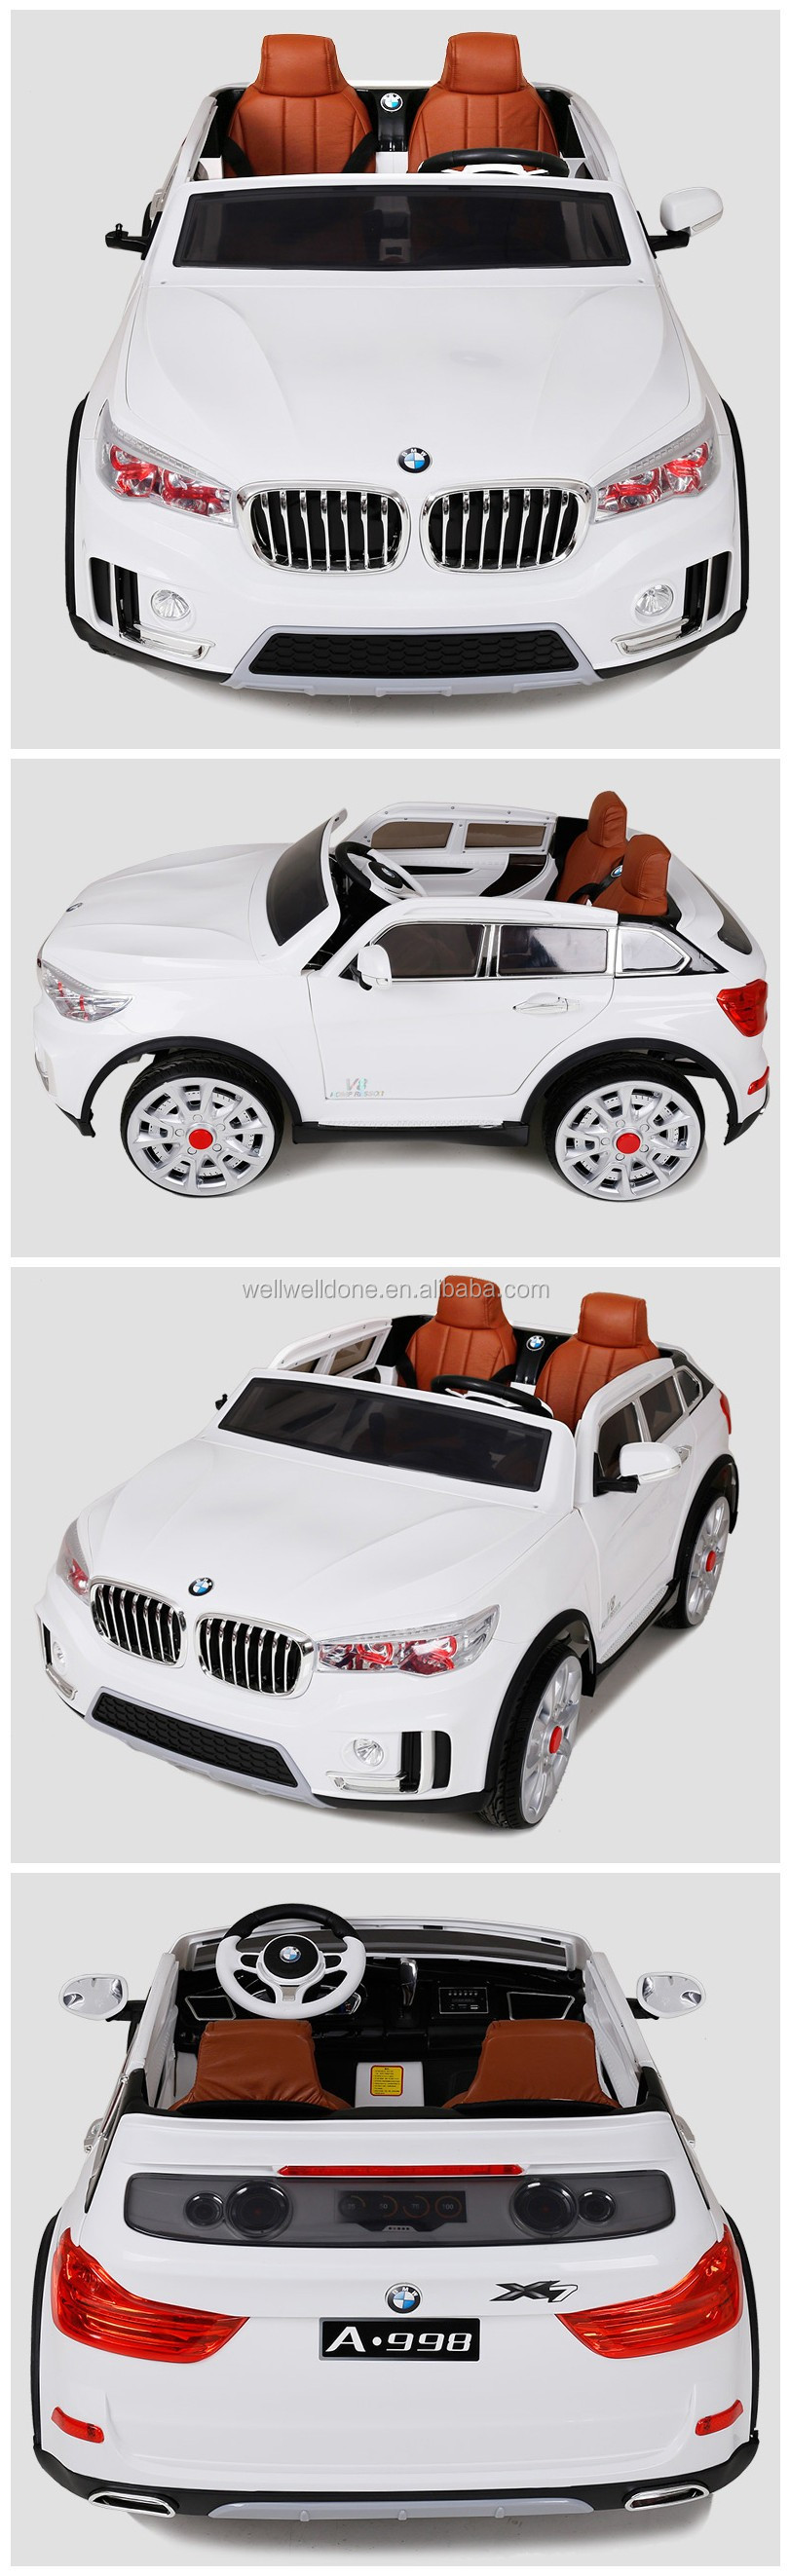 Hot selling big baby car, with 2.4G r/c, music and light, soft leather seat kids car, popular present WDA998